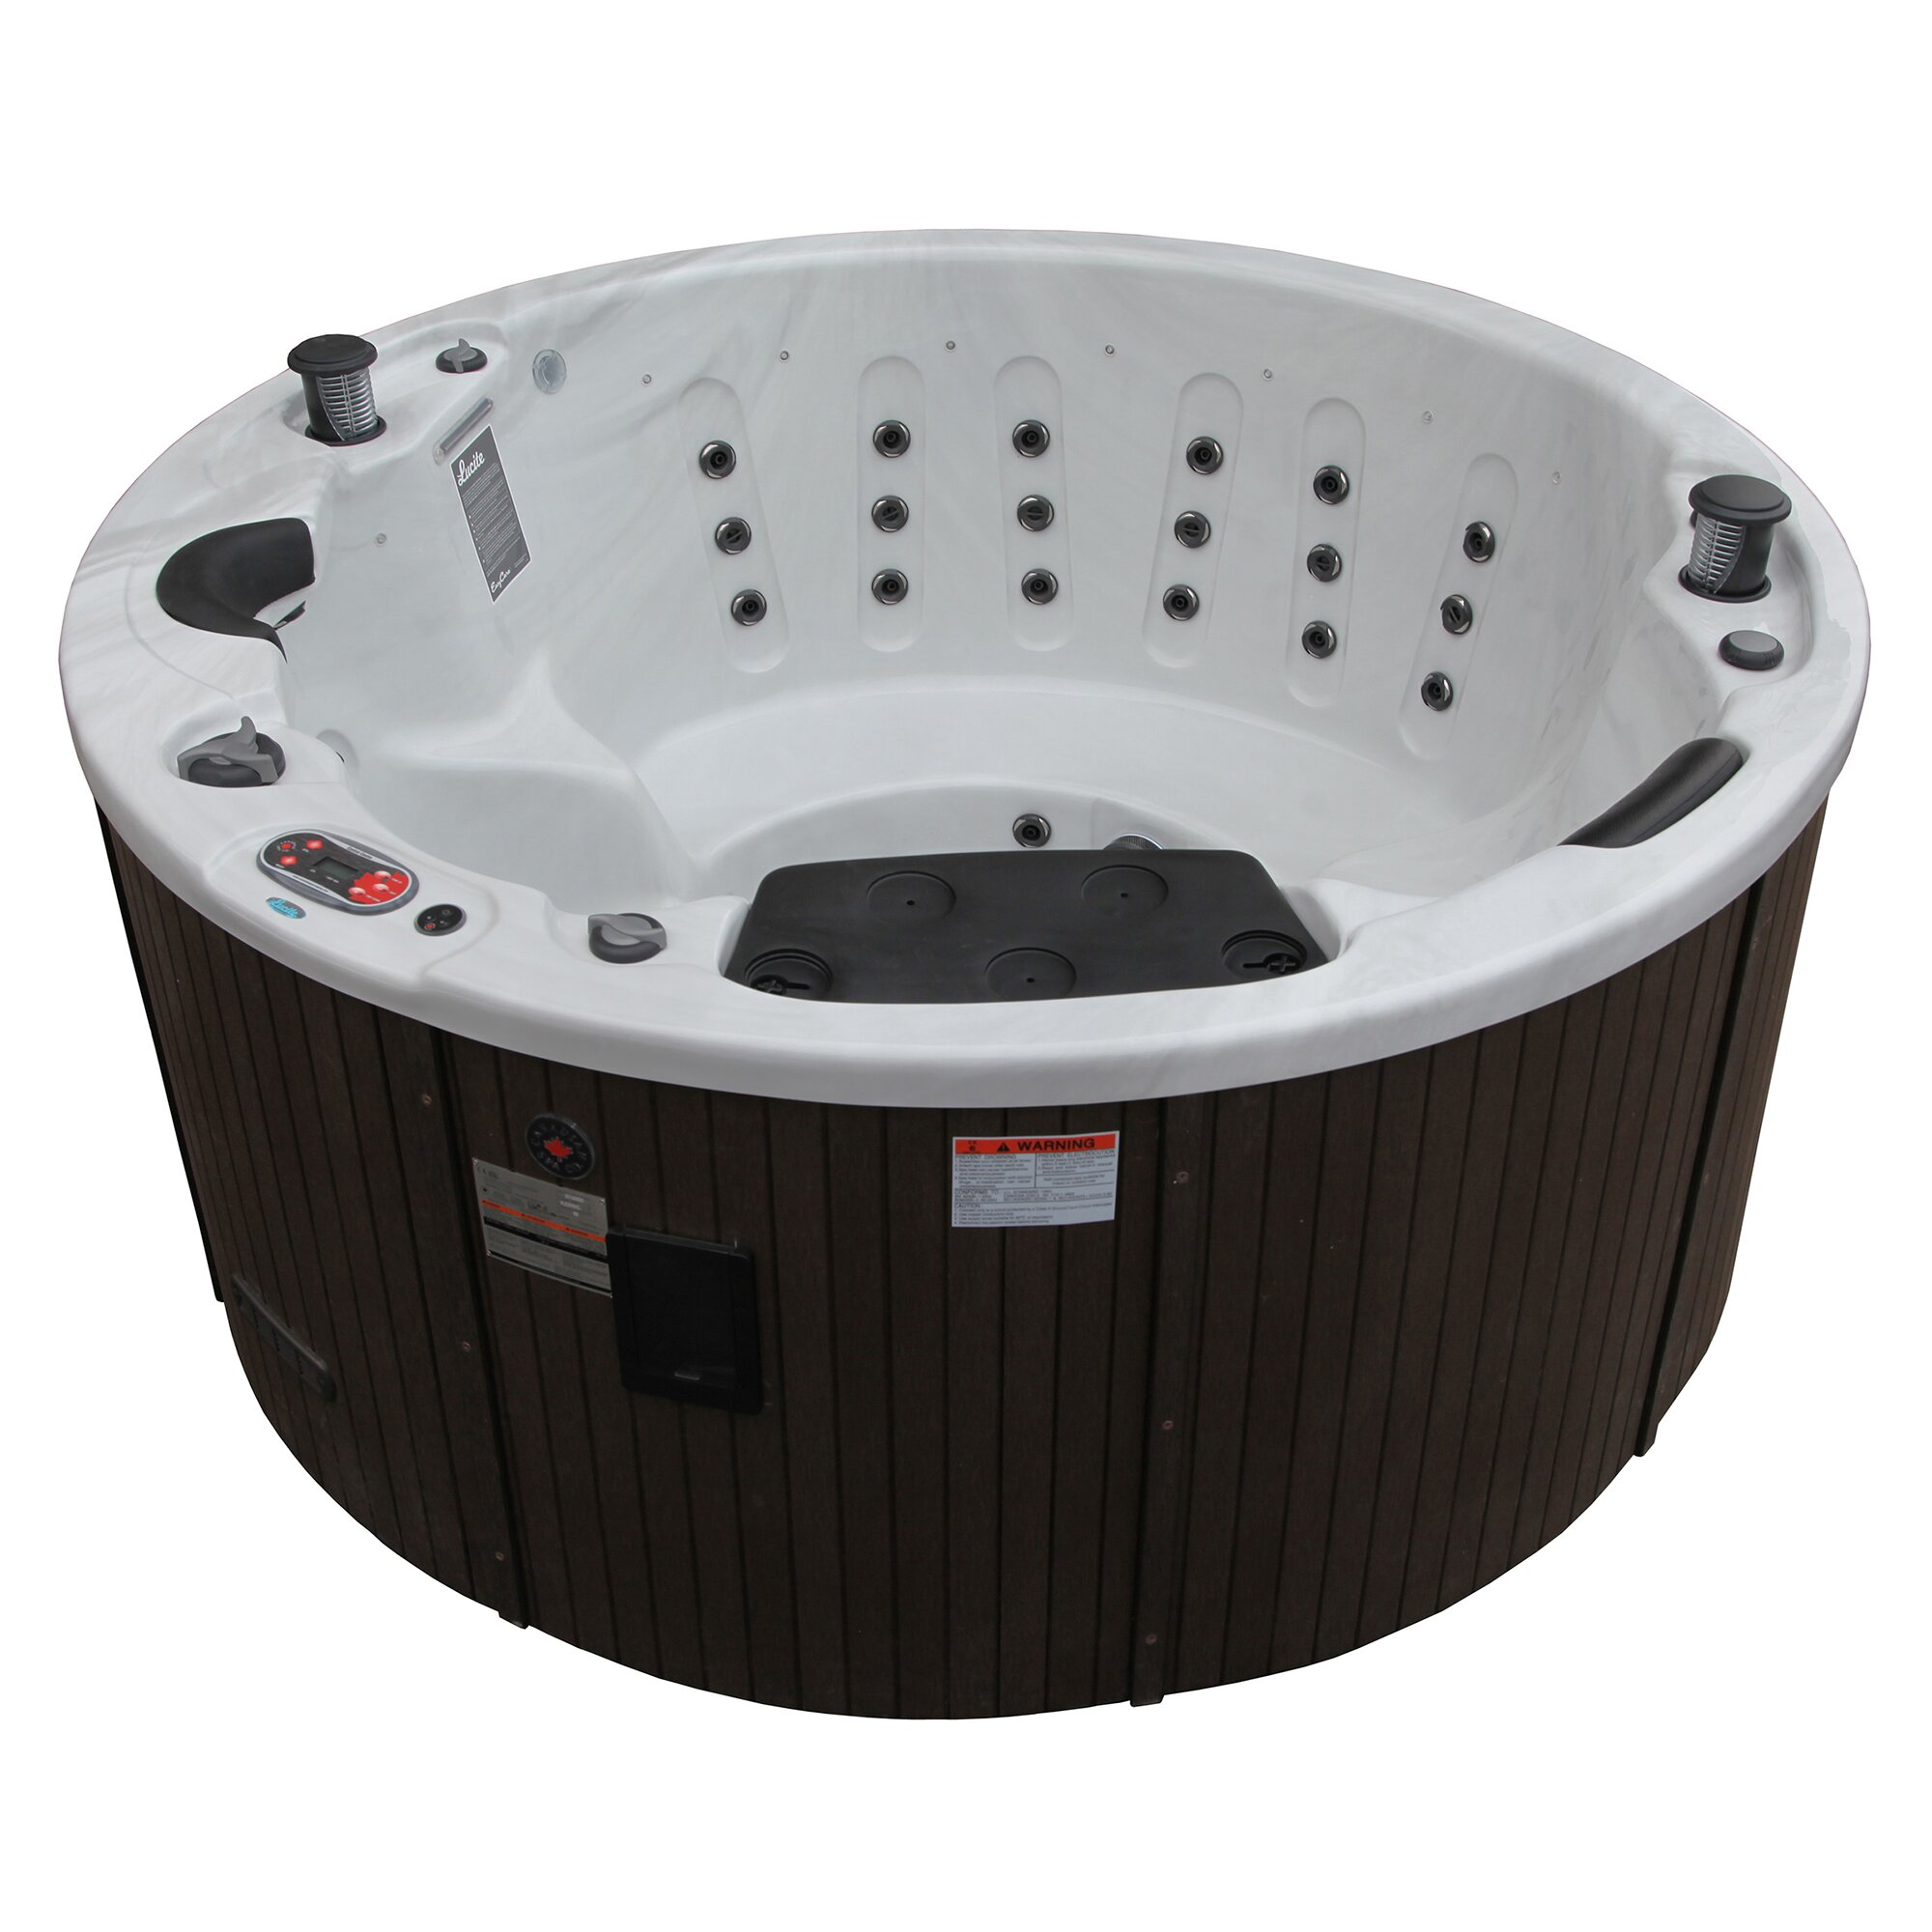 5 person 38 jet ottawa hot tub with waterfall wayfair. Black Bedroom Furniture Sets. Home Design Ideas